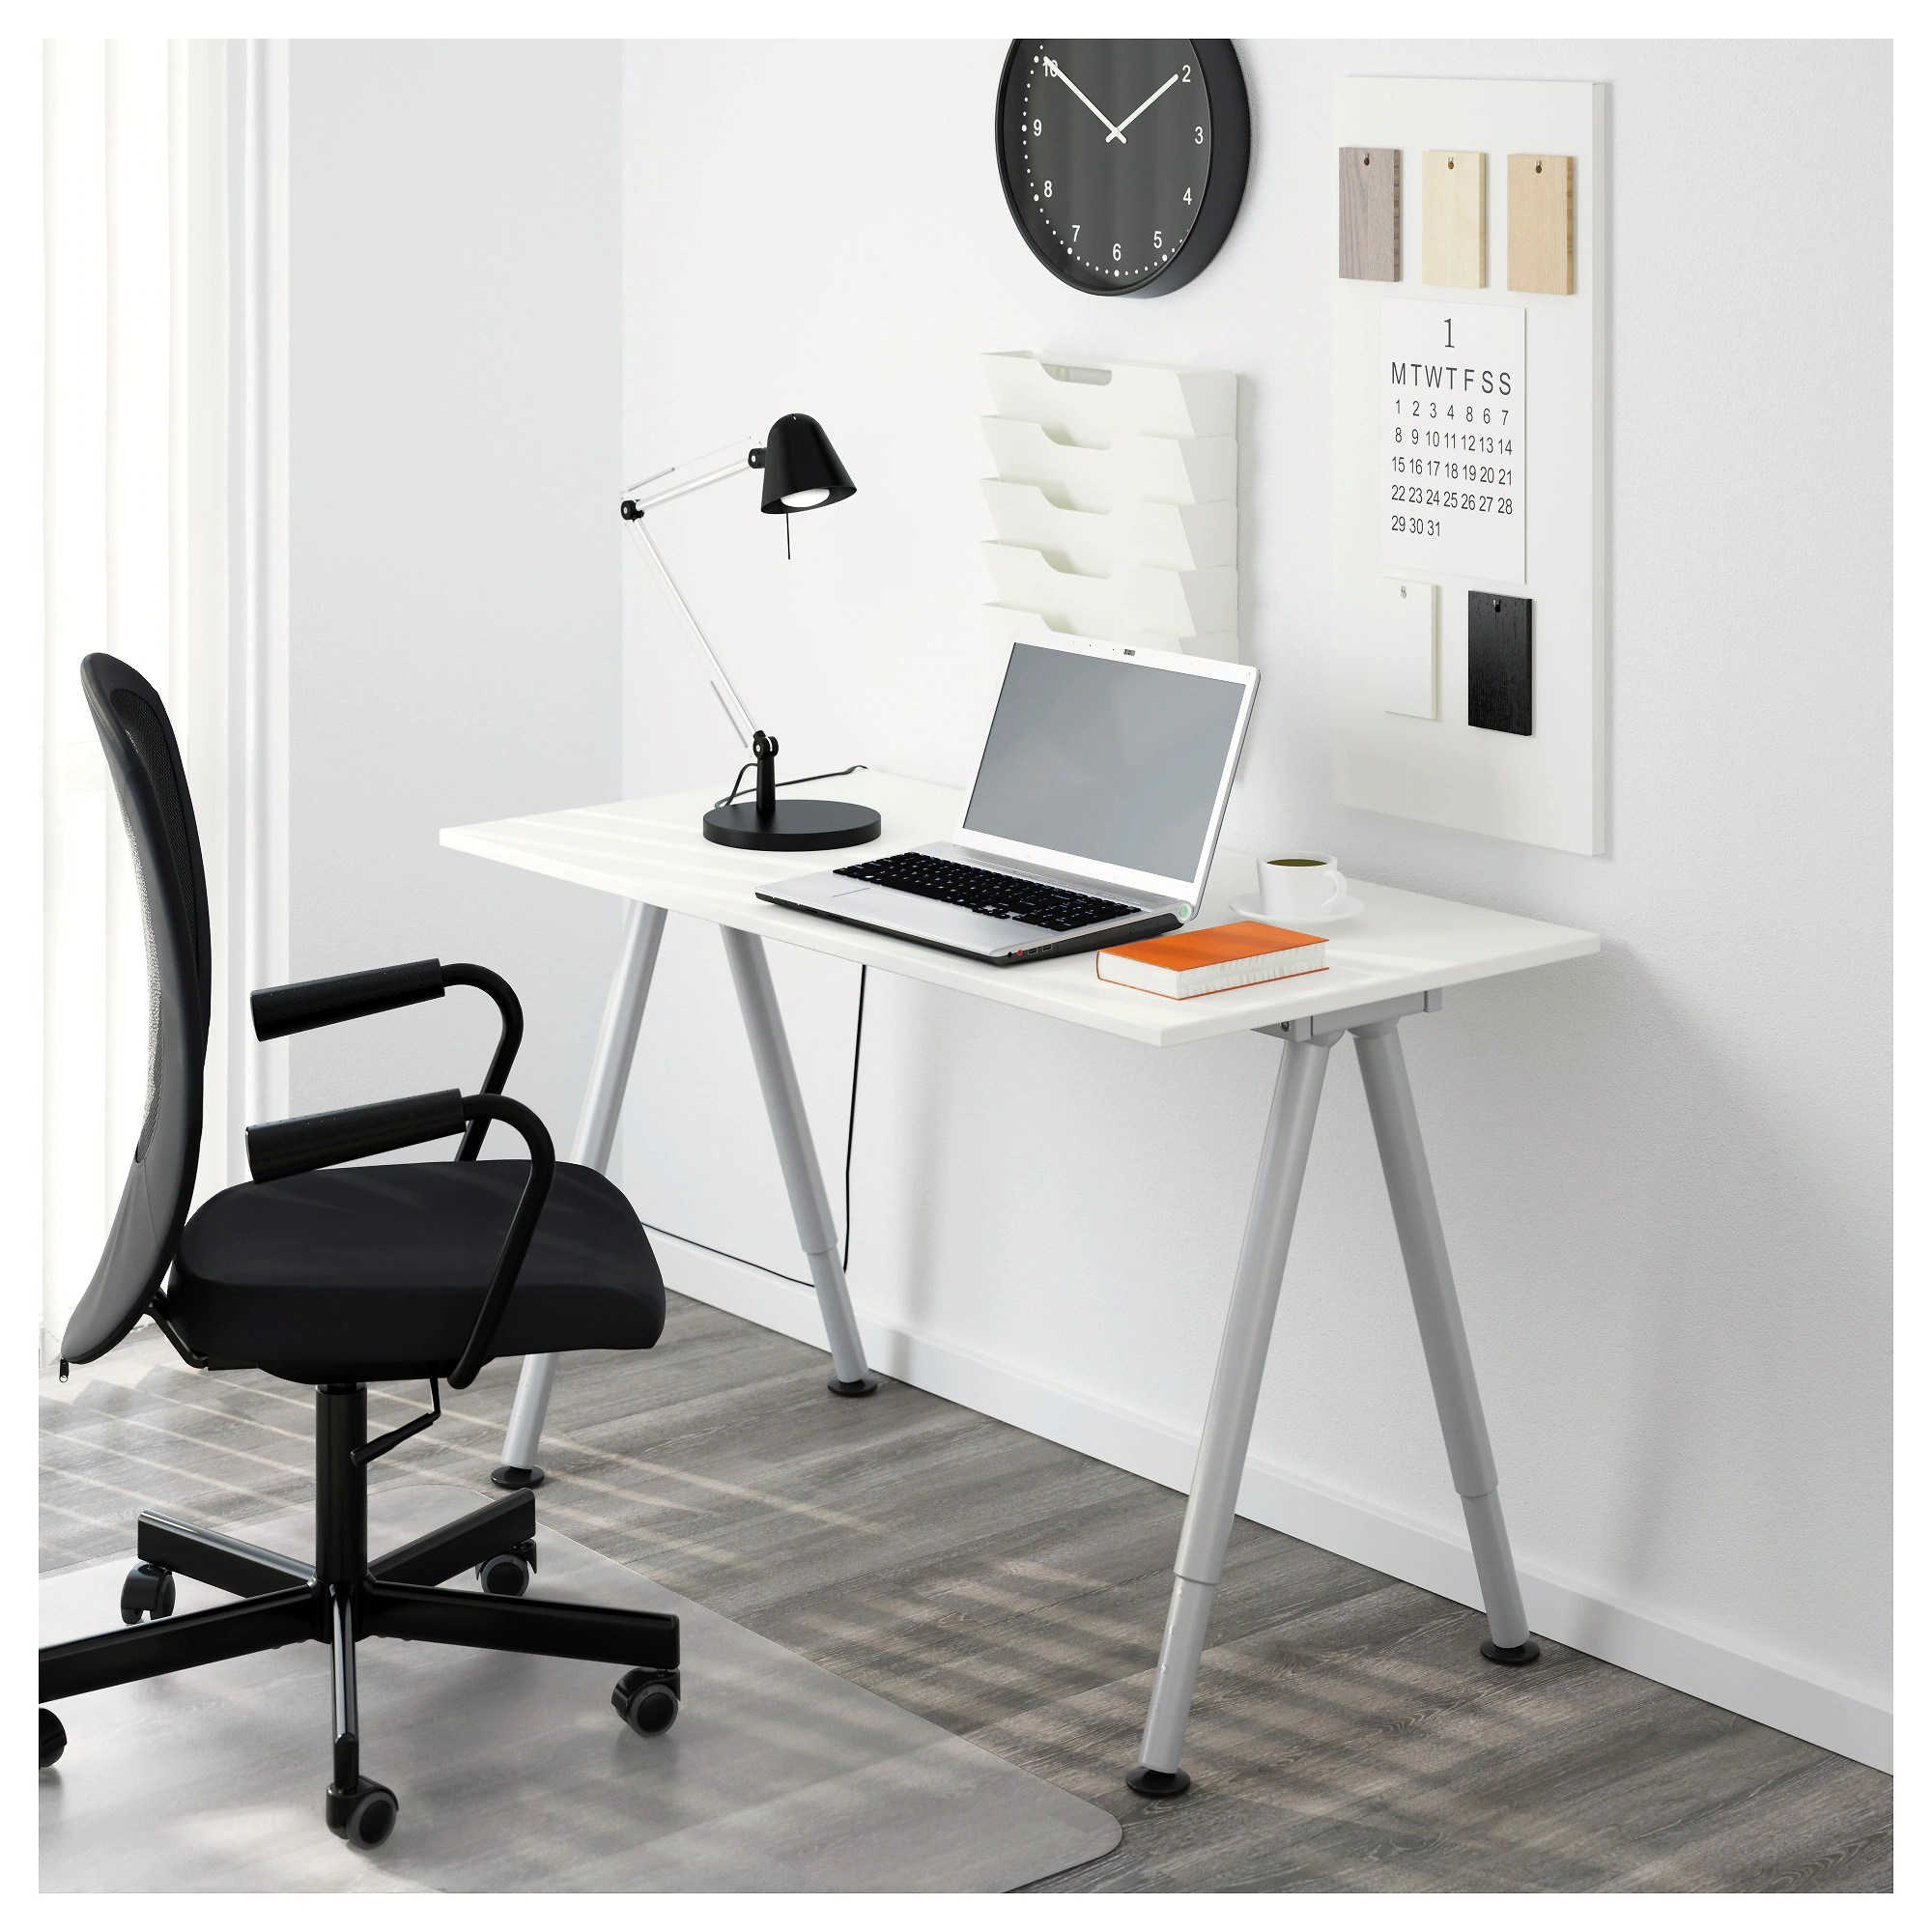 Ikea Desk Top Thyge Desk White Silver Color